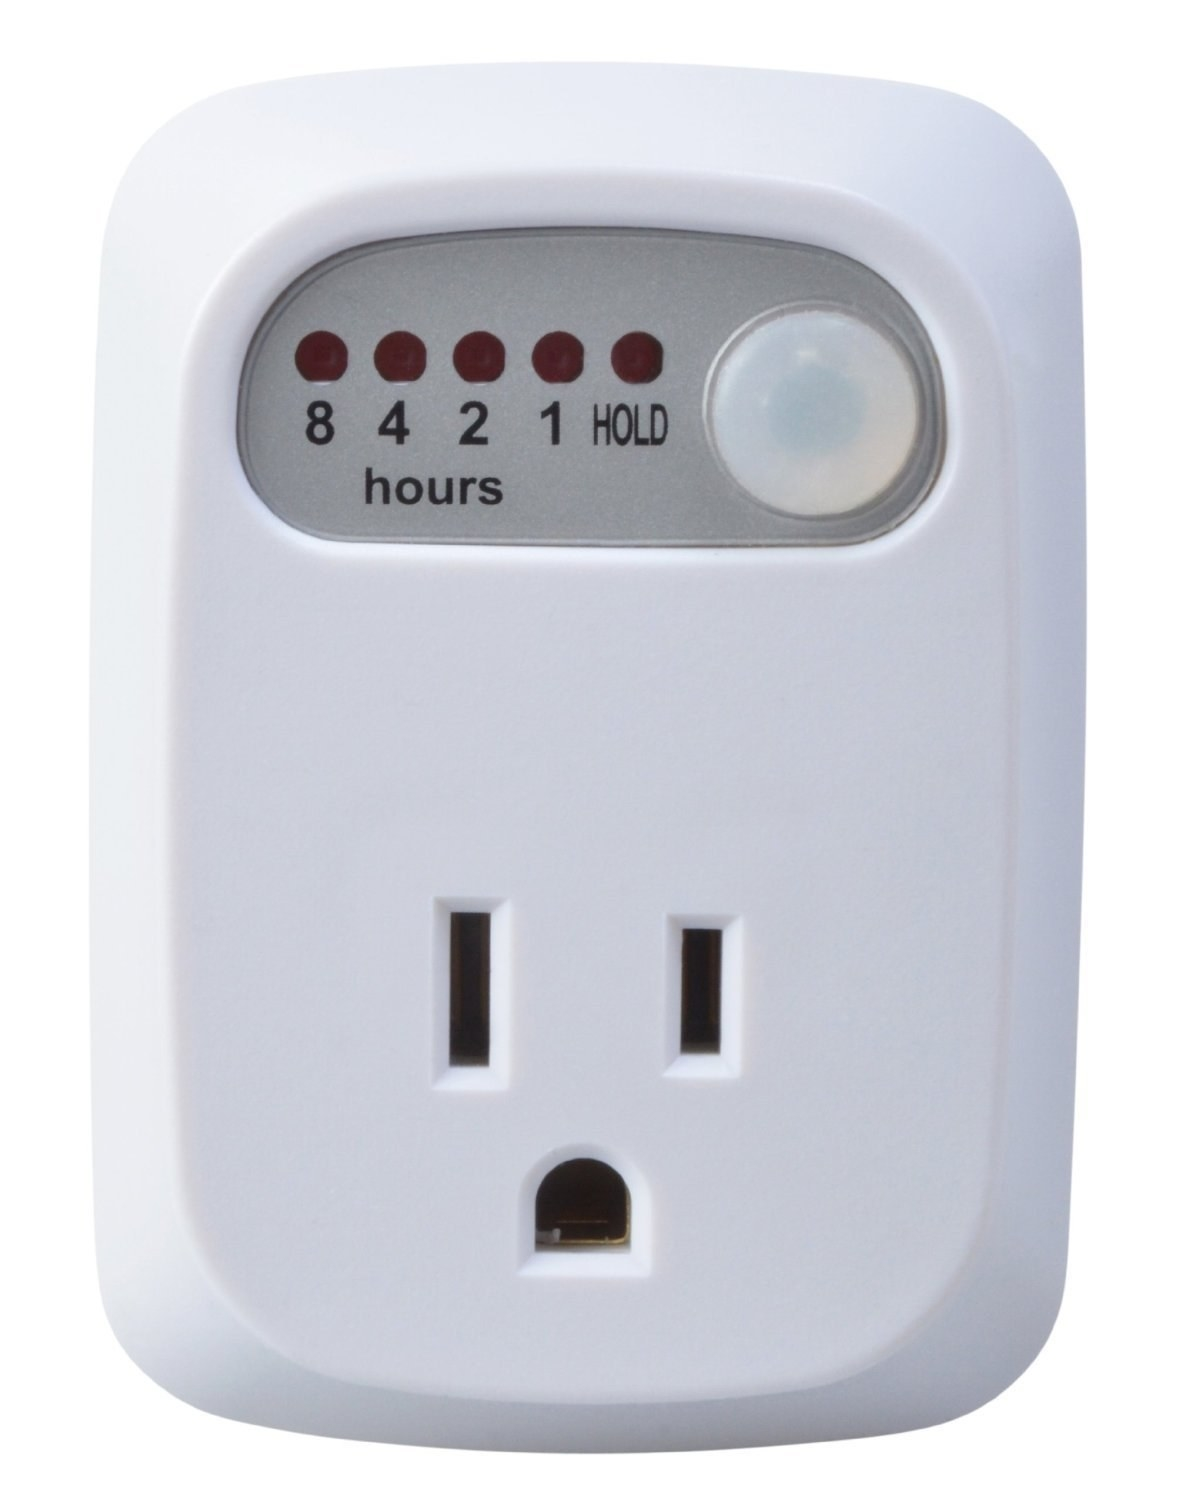 The outlet timer with plug and 8, 4, 2, 1-hour, and hold settings